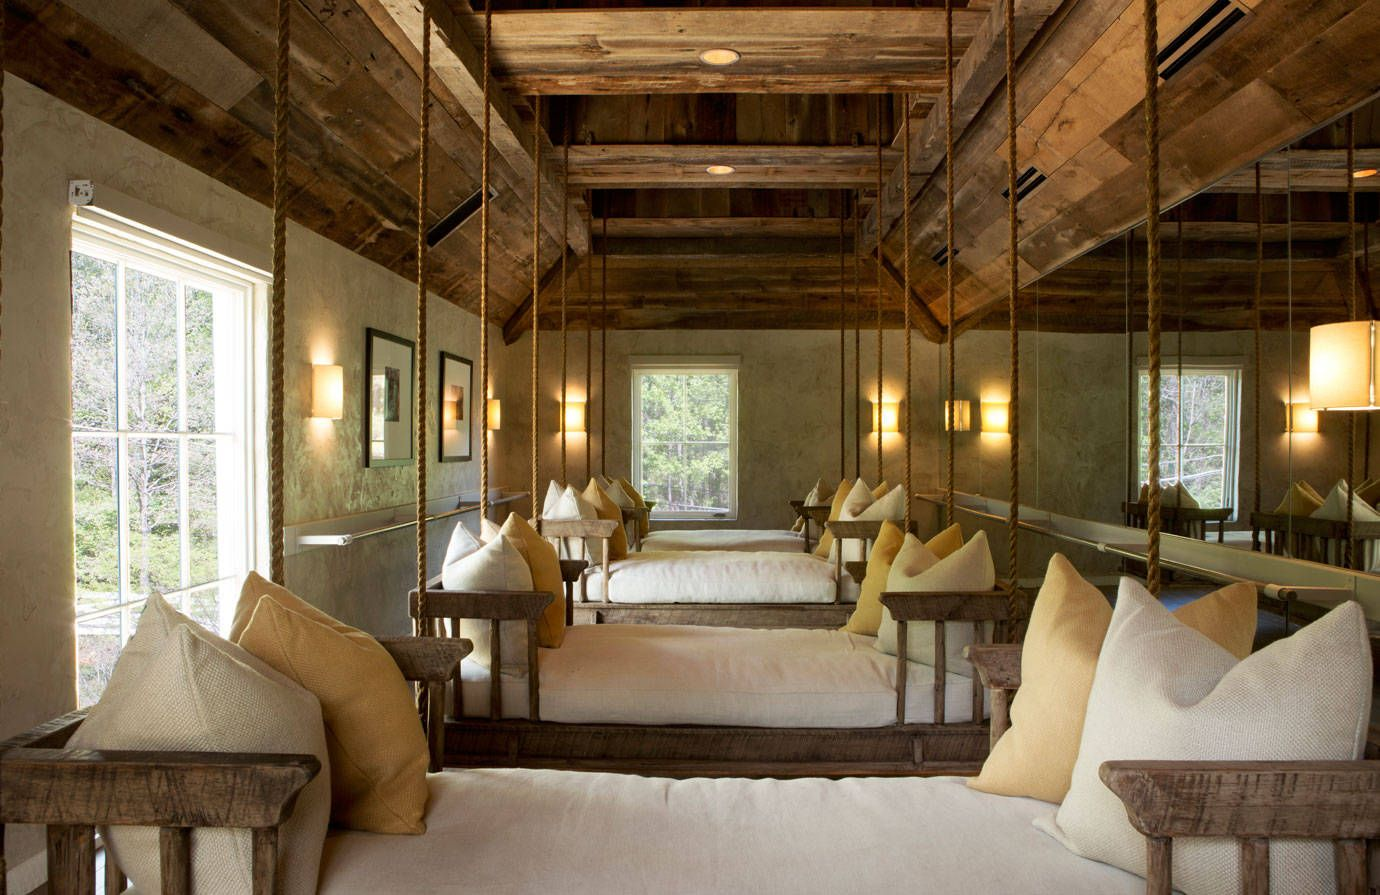 Worth The Trip Blackberry Farm S New Spa Blackberry Farms Salon Interior Design Interior Design Pictures